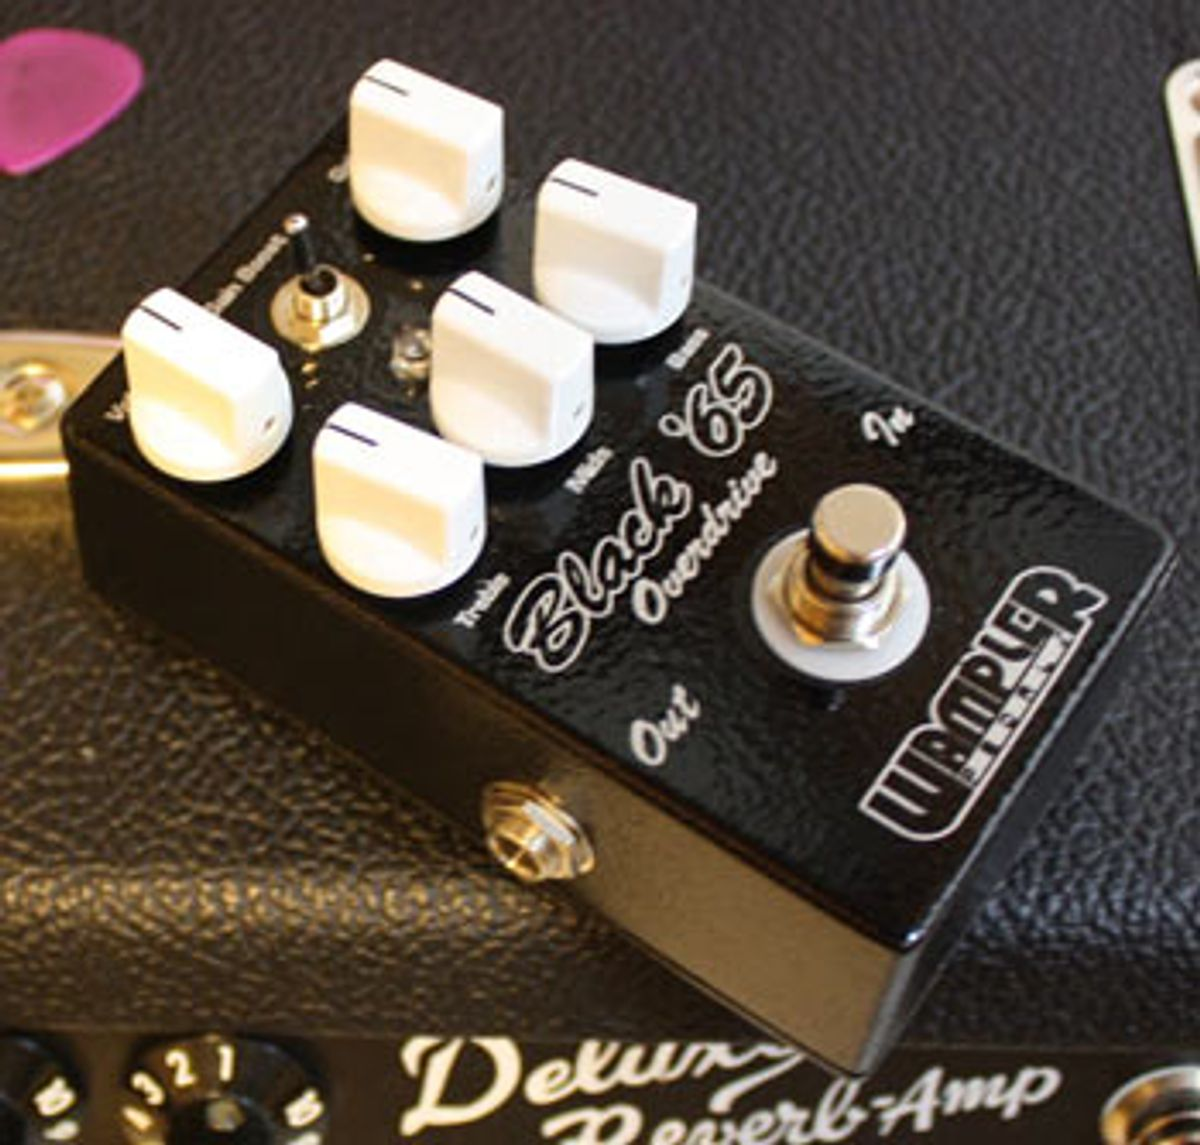 Wampler Pedals Releases Black '65 Overdrive Pedal